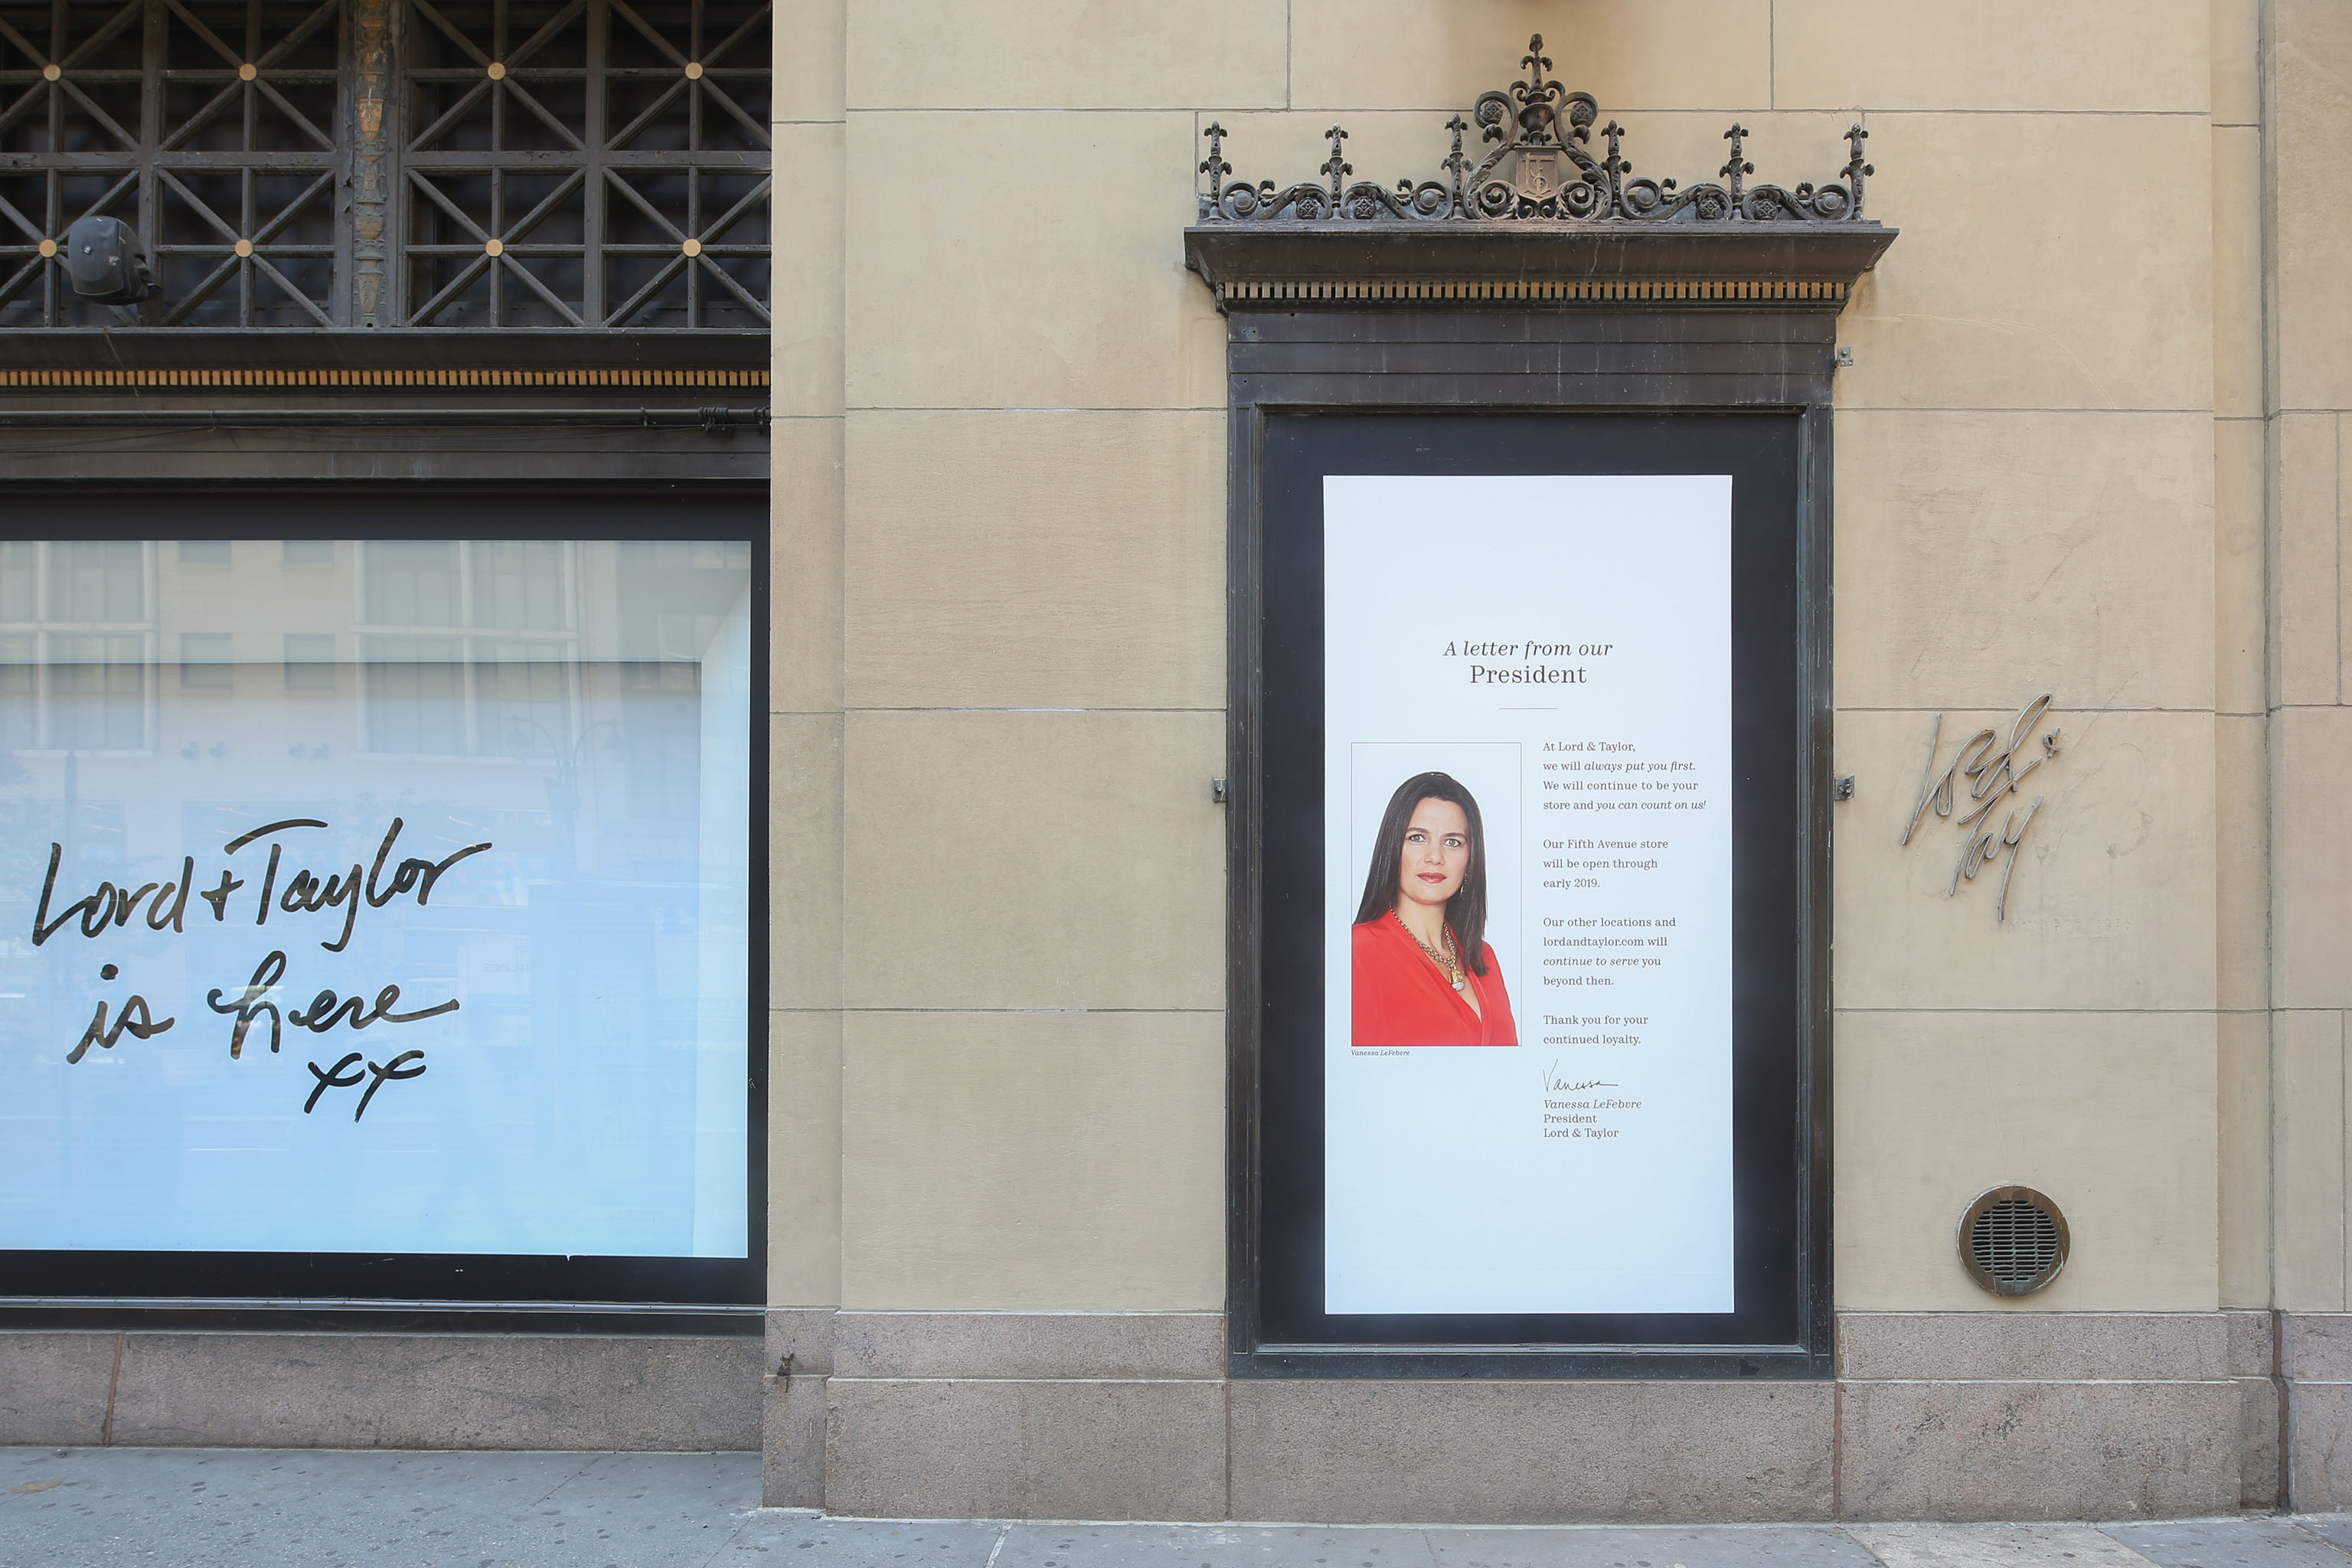 """The new president of Lord & Taylor, Vanessa LeFebvre, has written a letter posted in the flagship' Fifth Avenue window stating Lord & Taylor's Fifth Avenue store will close in early 2019. She says the chain's other locations and lordandtaylor.com """"will continue to serve you beyond then."""""""